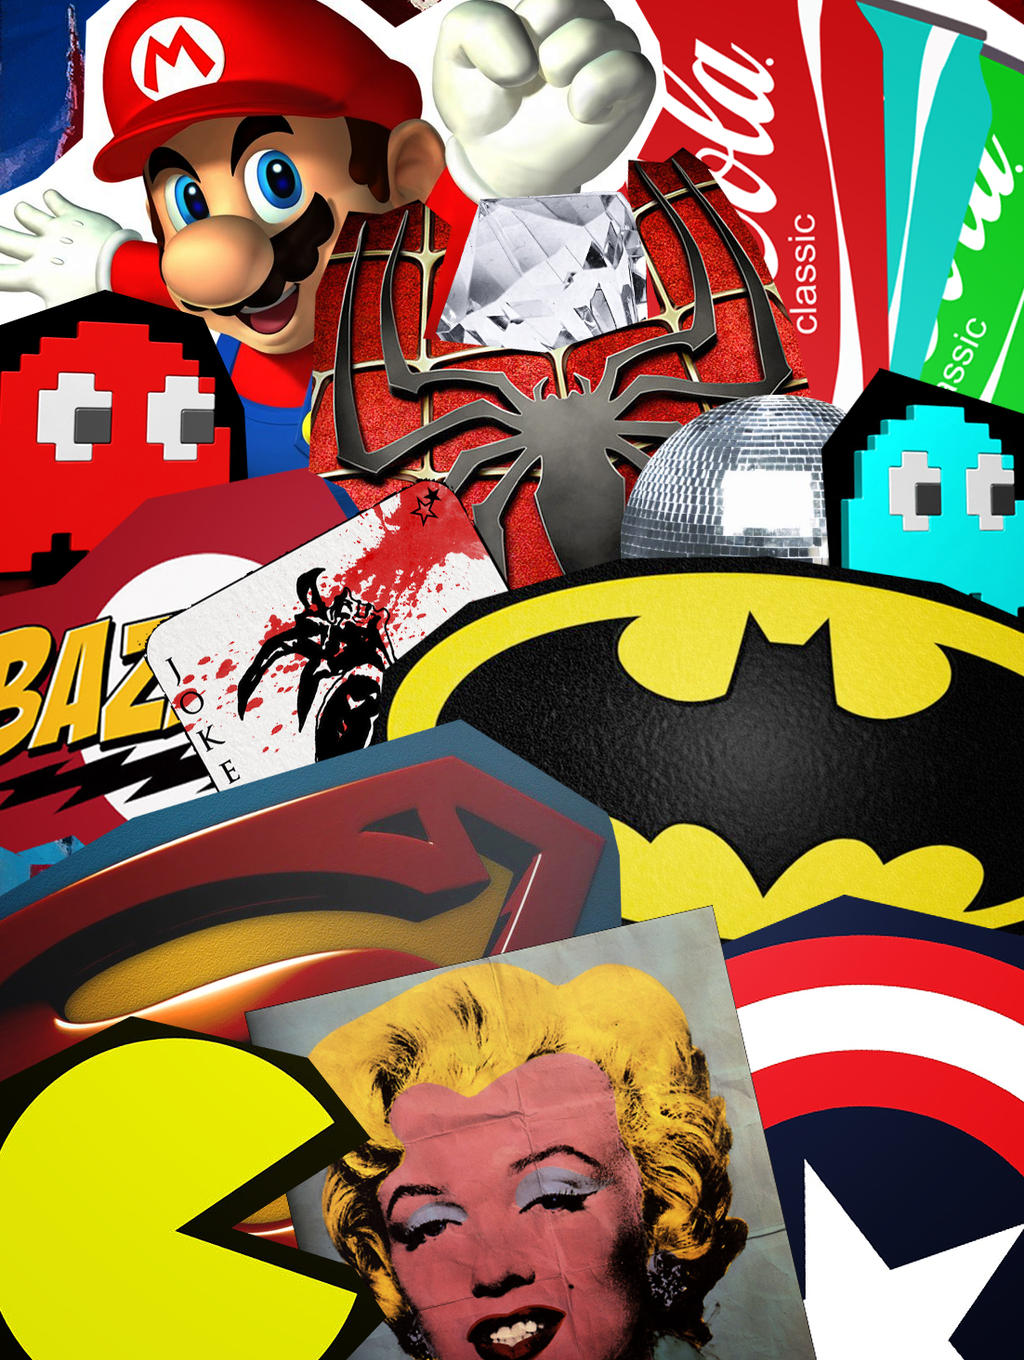 Download this Pop Culture Banner Popreaper picture